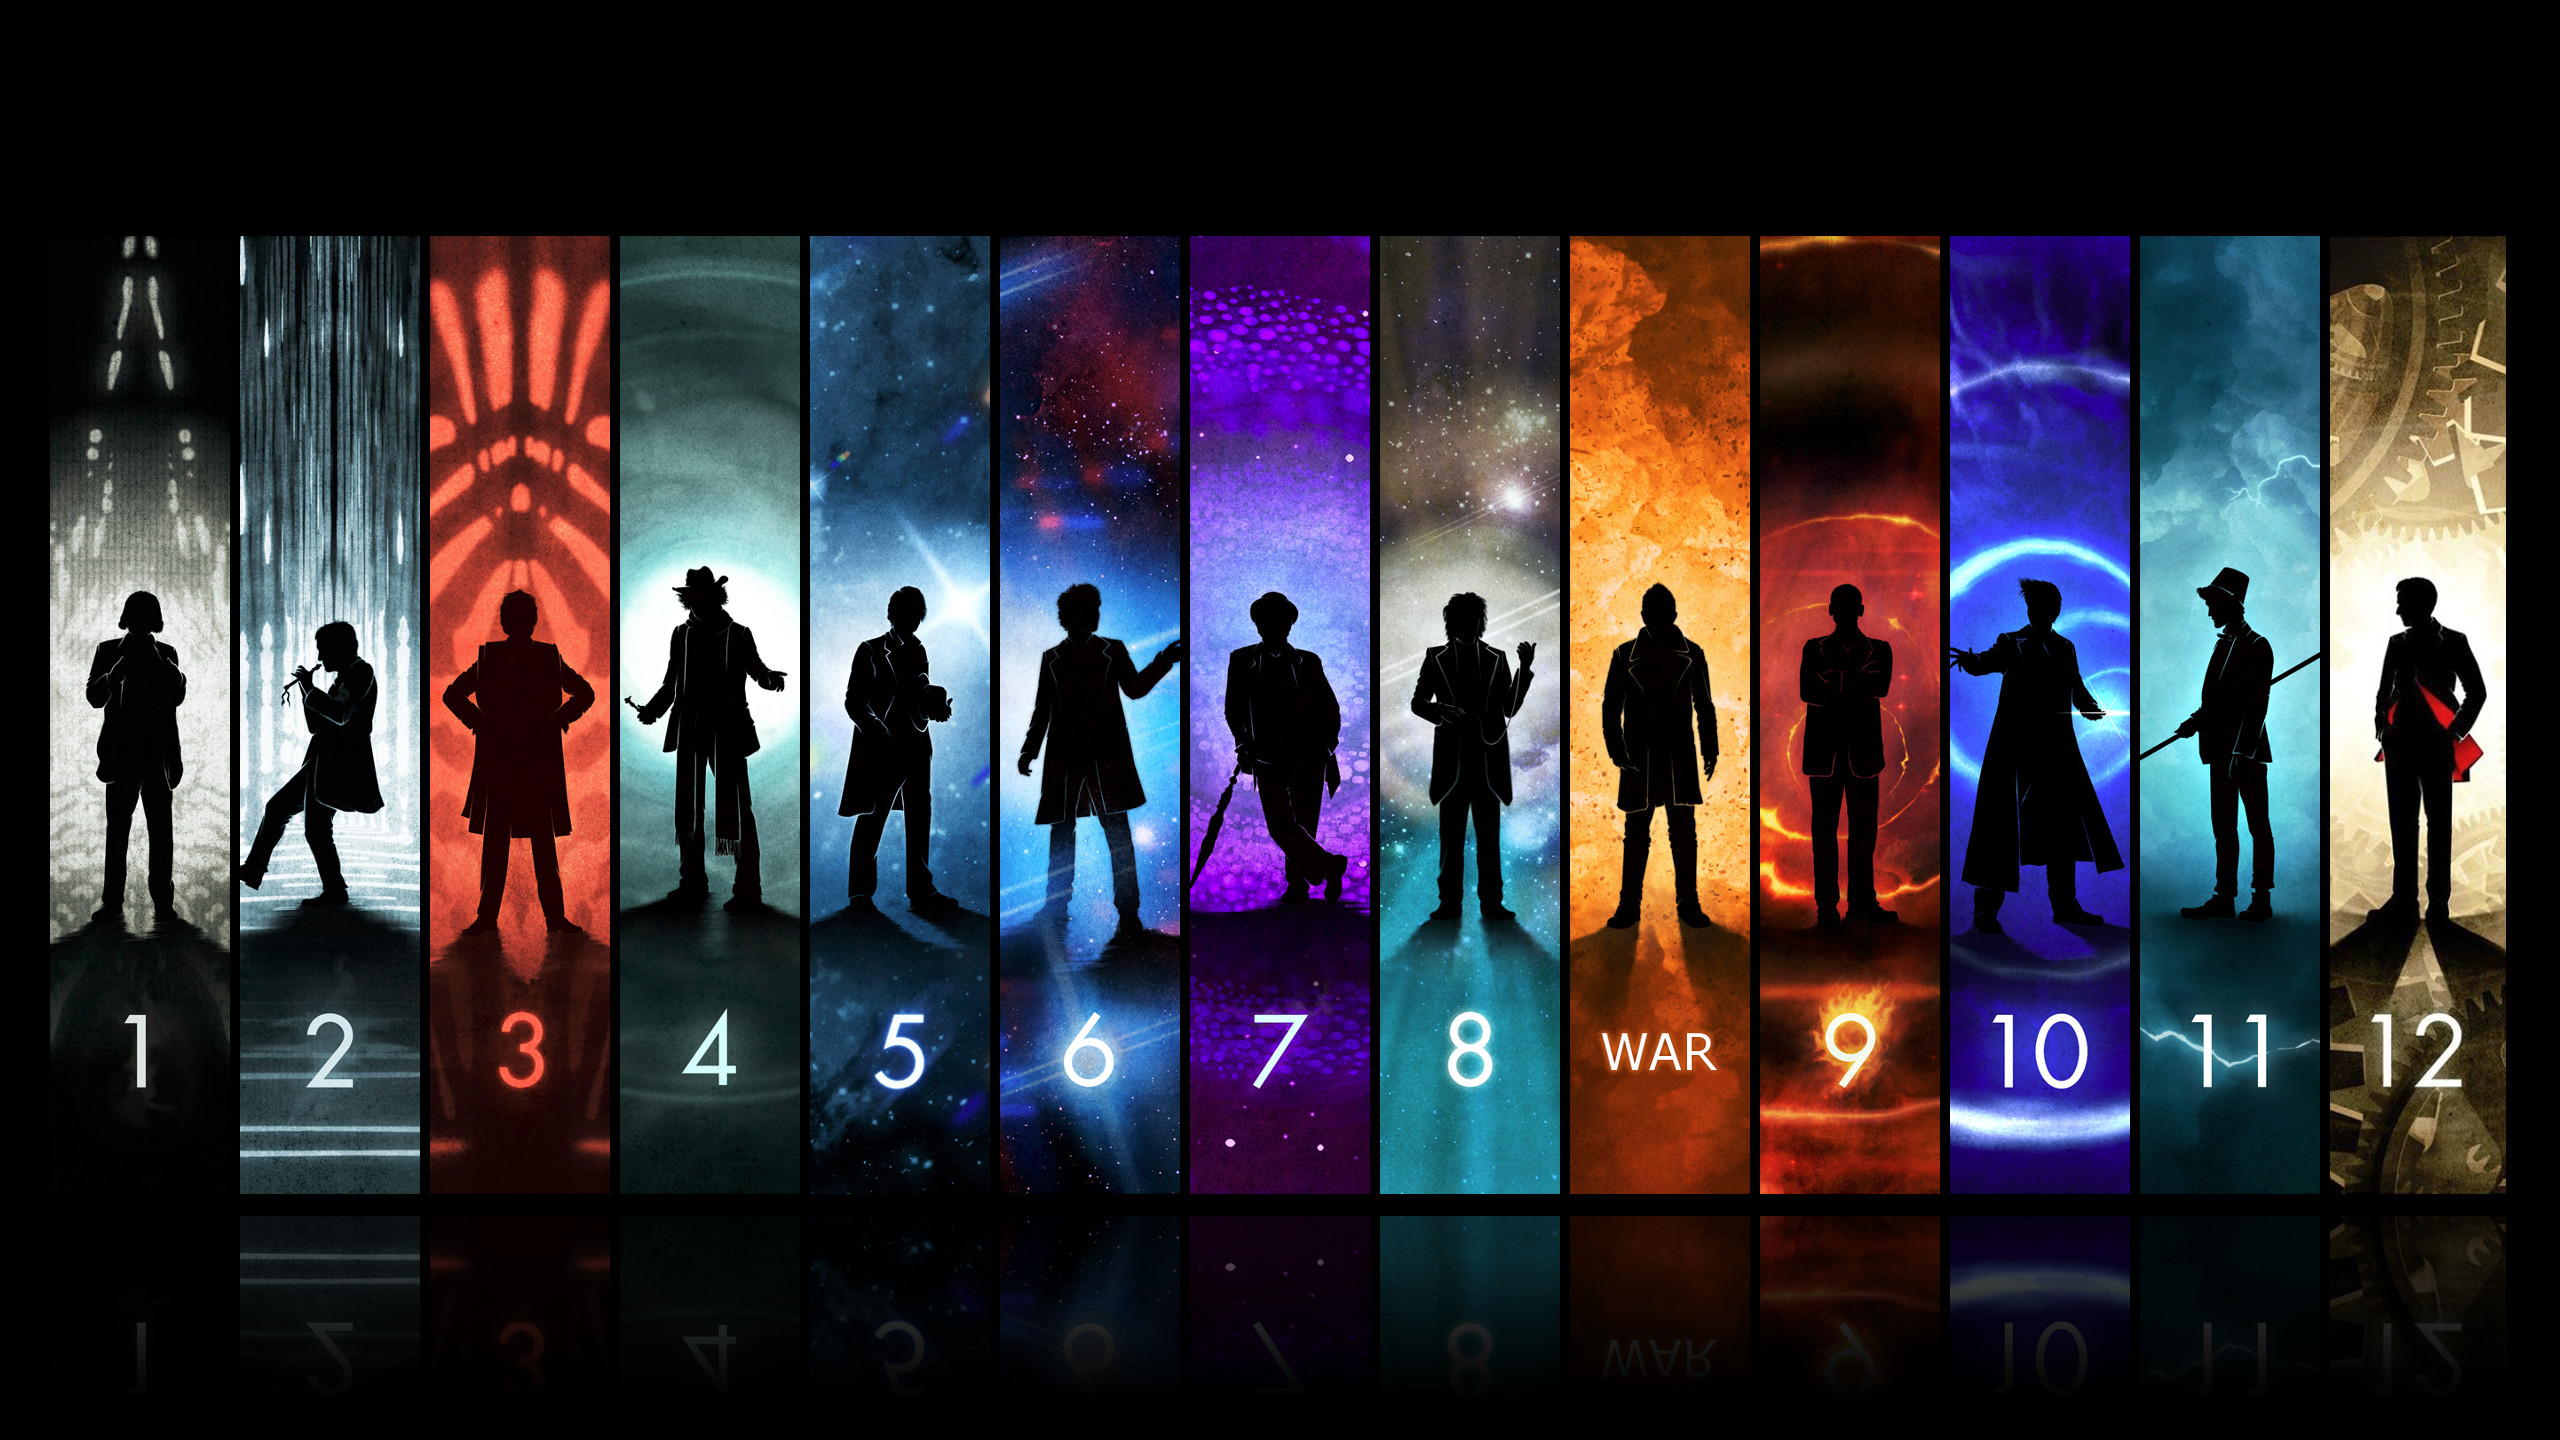 Doctor Who All Doctors Wallpaper (68+ images)  All 12 Doctors Wallpaper